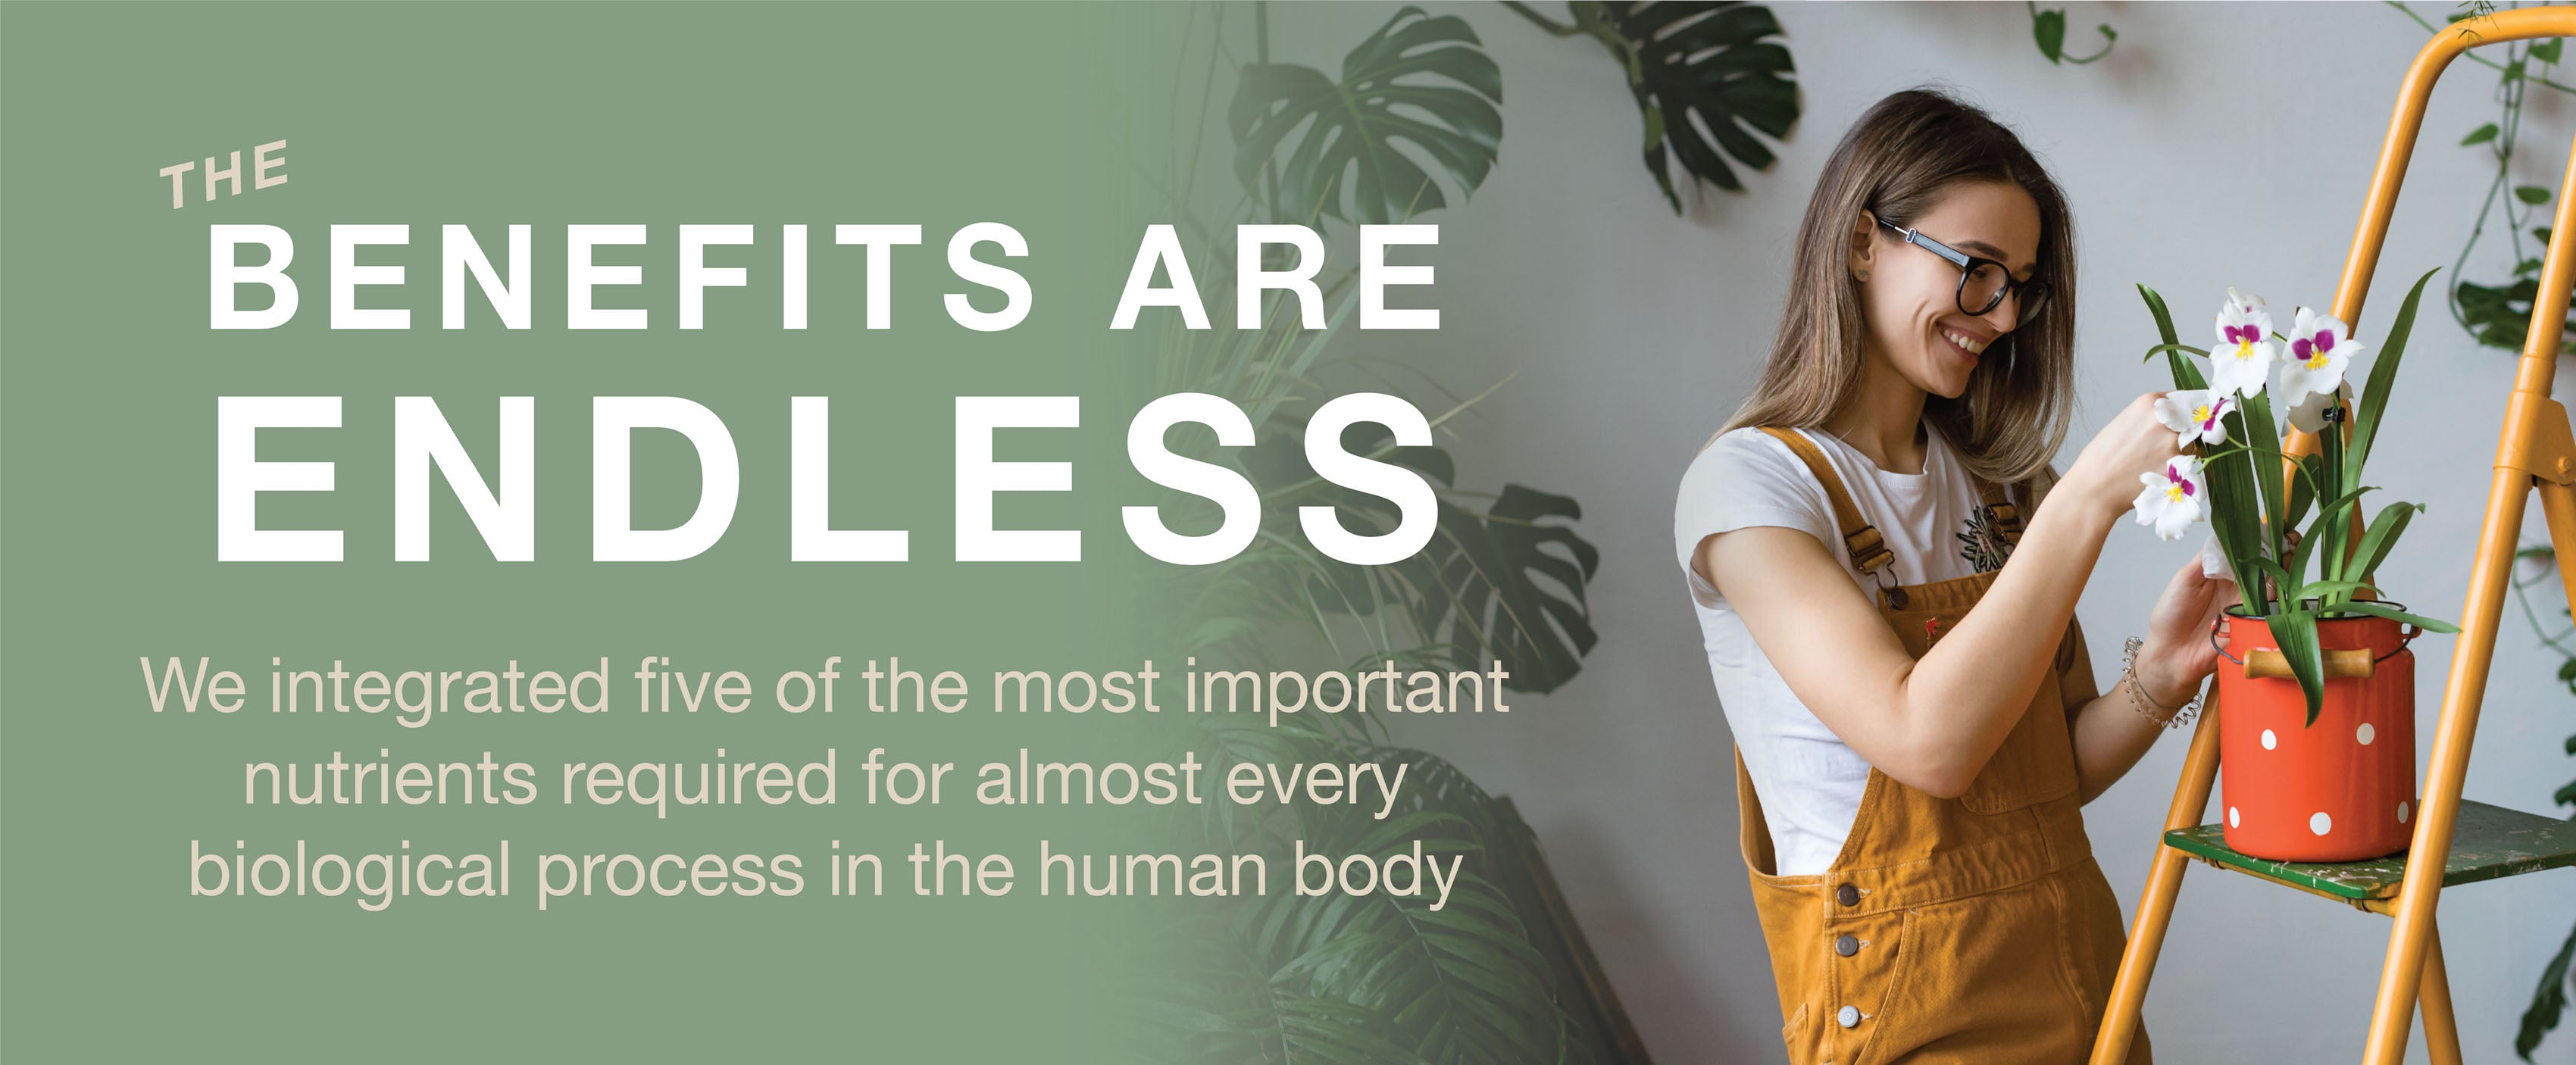 We integrated five of the most important nutrients required for almost every biological process in the human body.